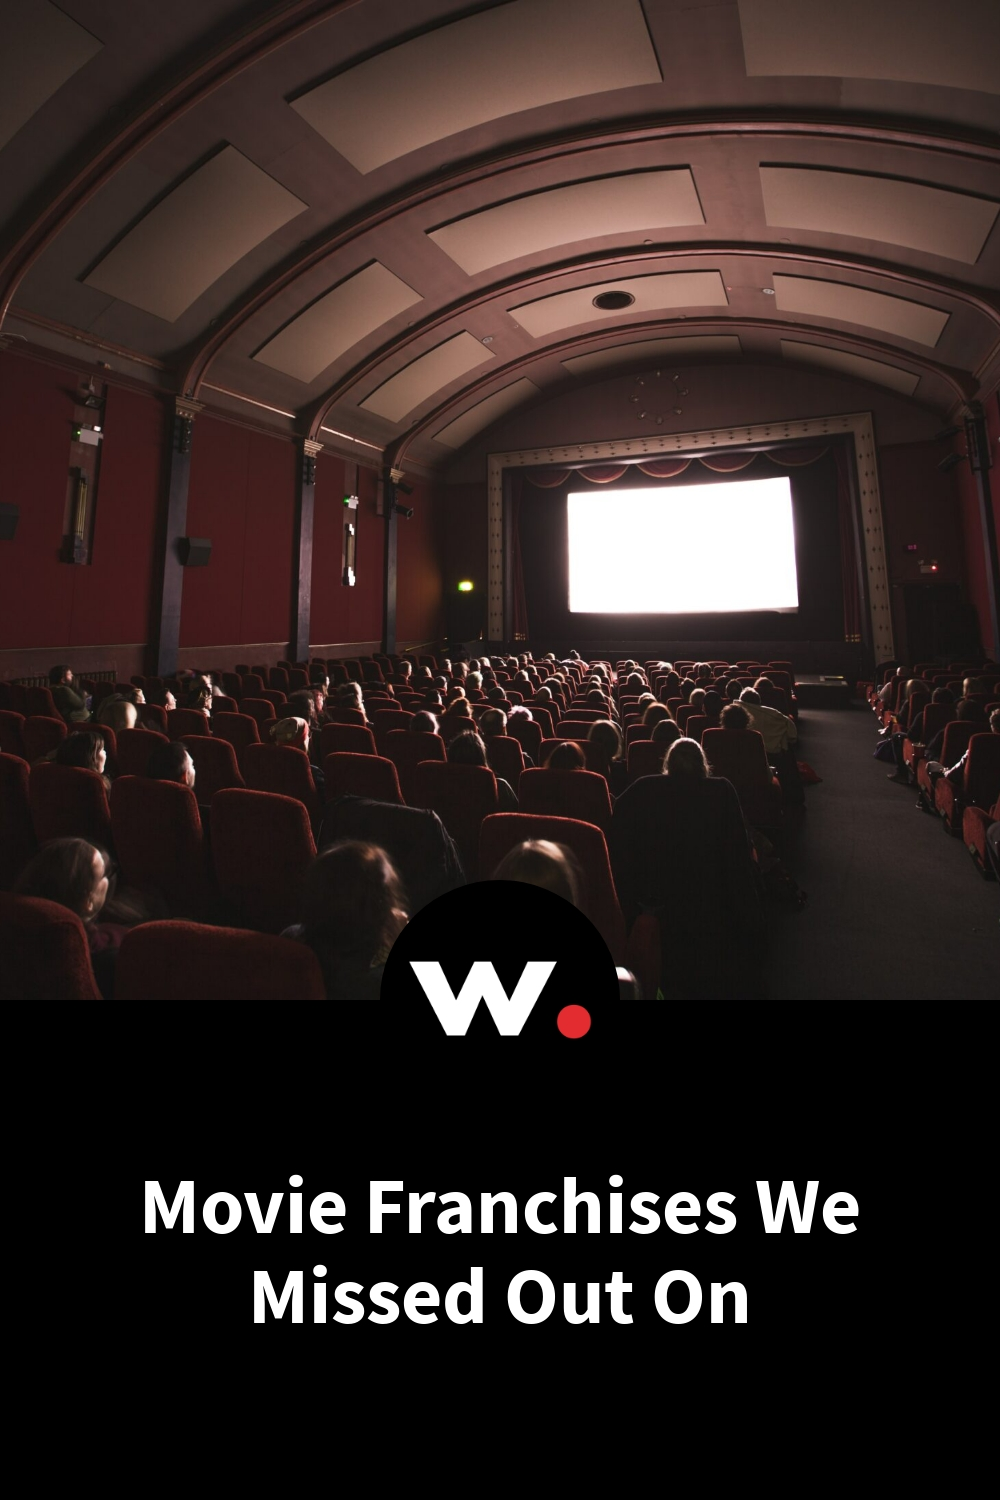 Movie Franchises We Missed Out On